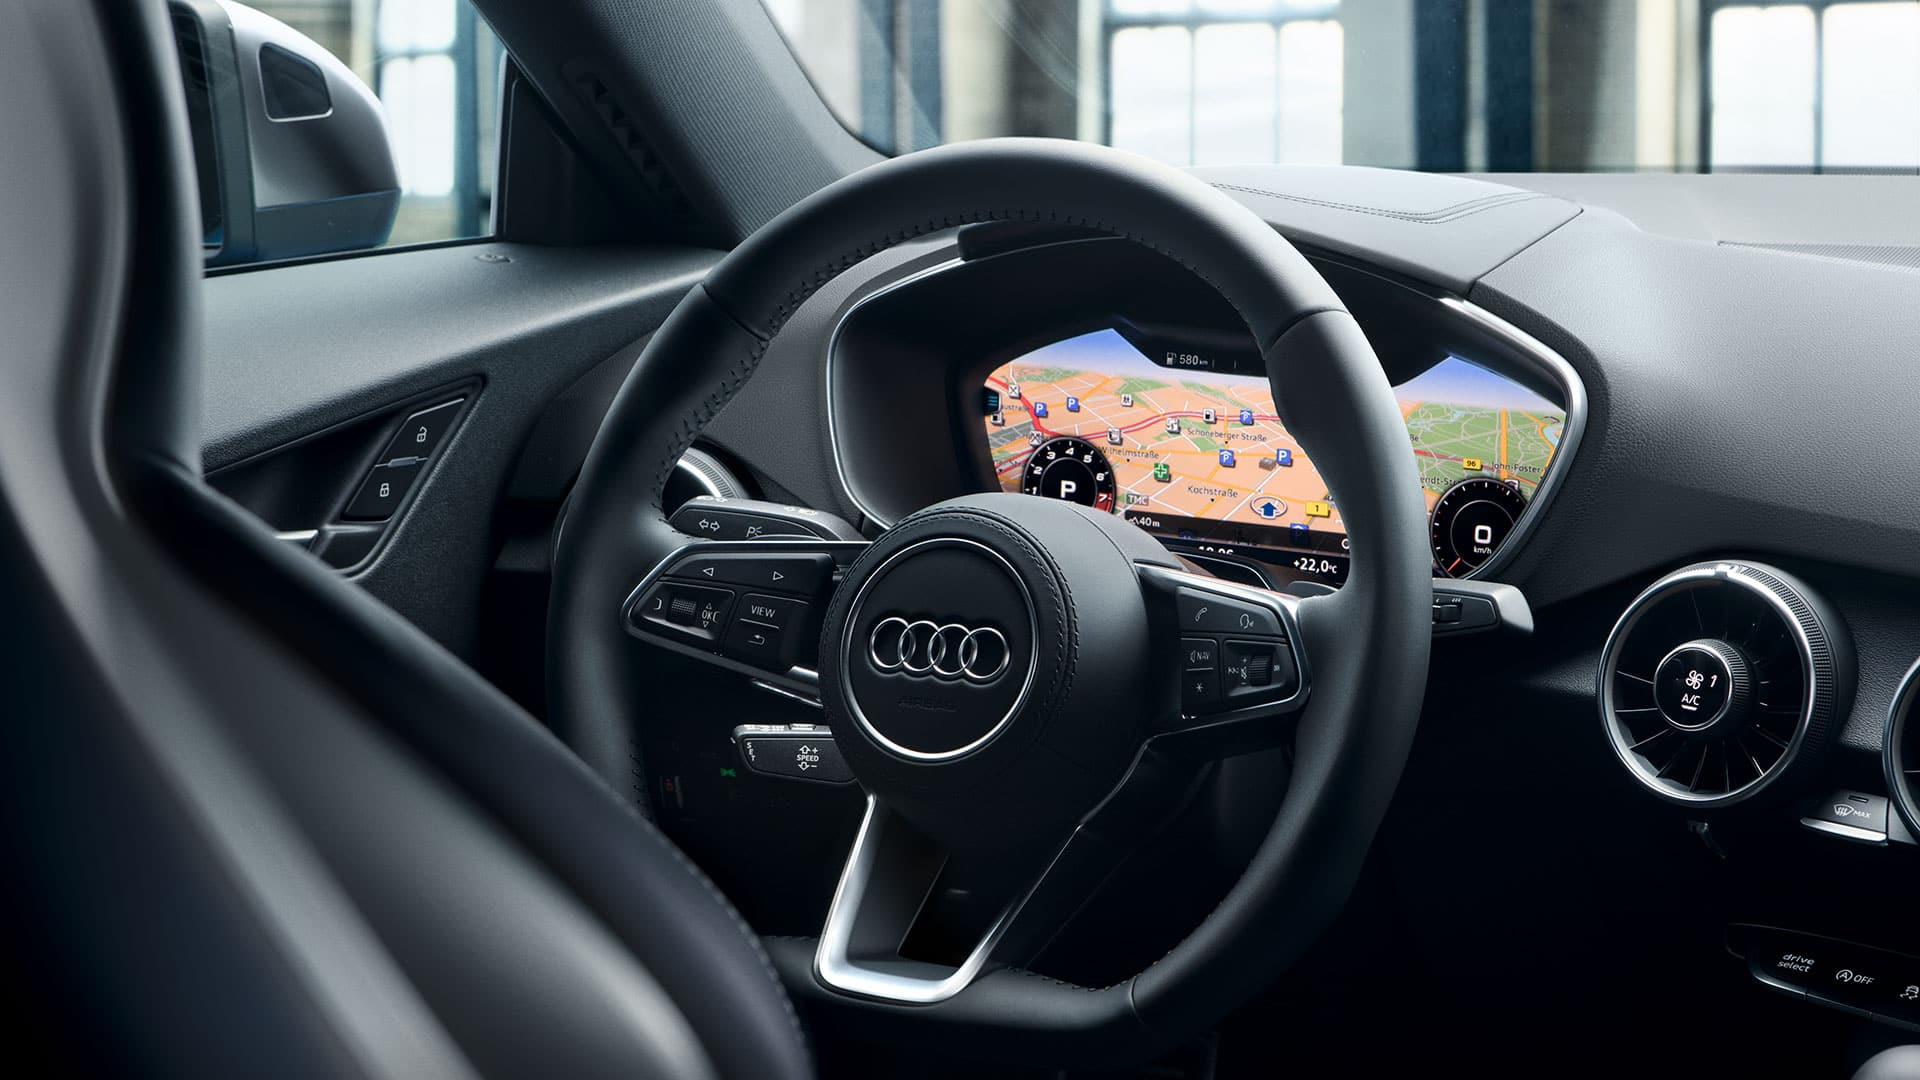 Audi virtual cockpit in the TT Roadster